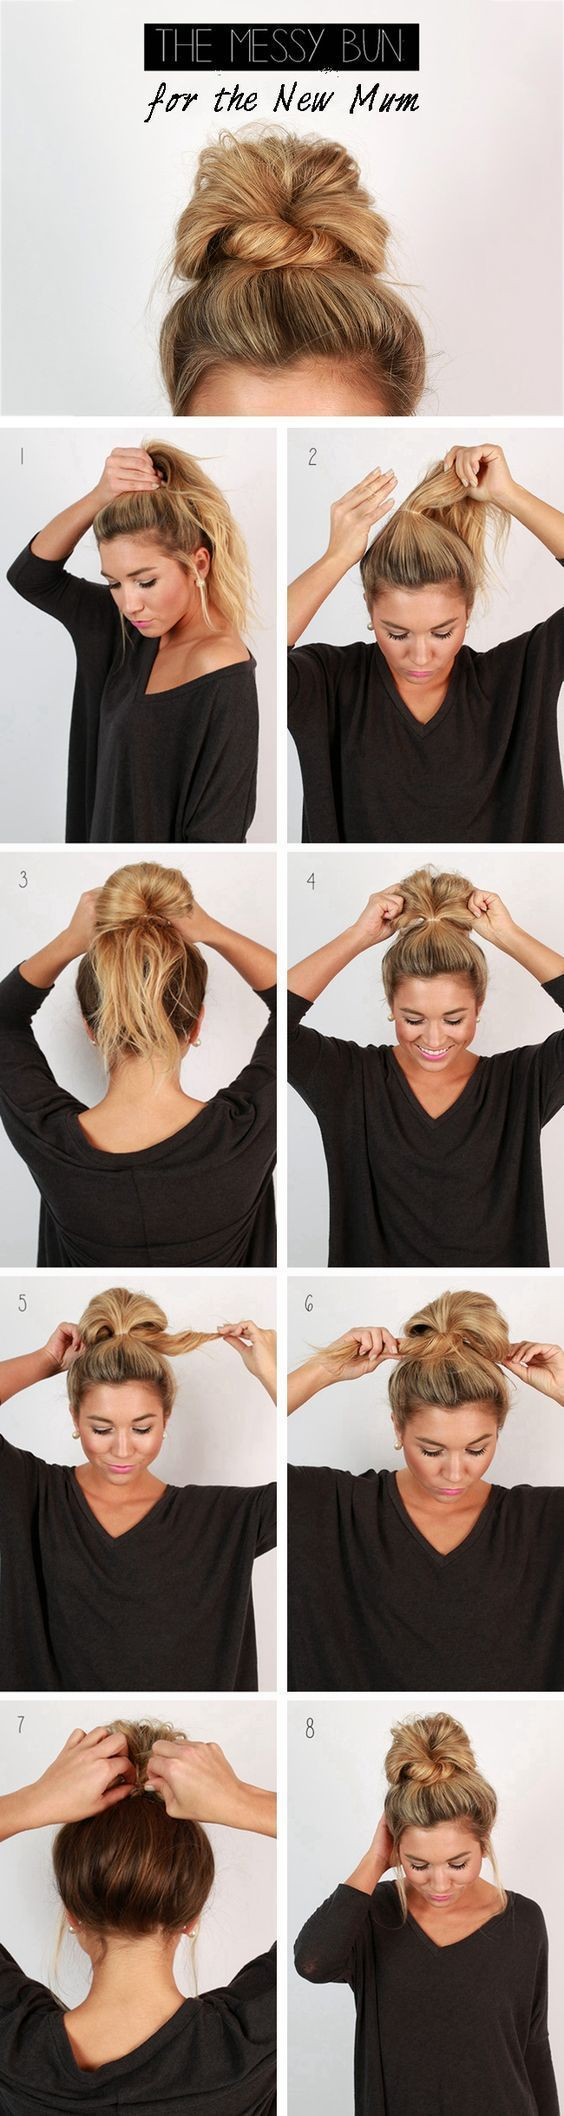 Fast easy messy bun updo for the new mum – Step by Step Hair Tutorial -